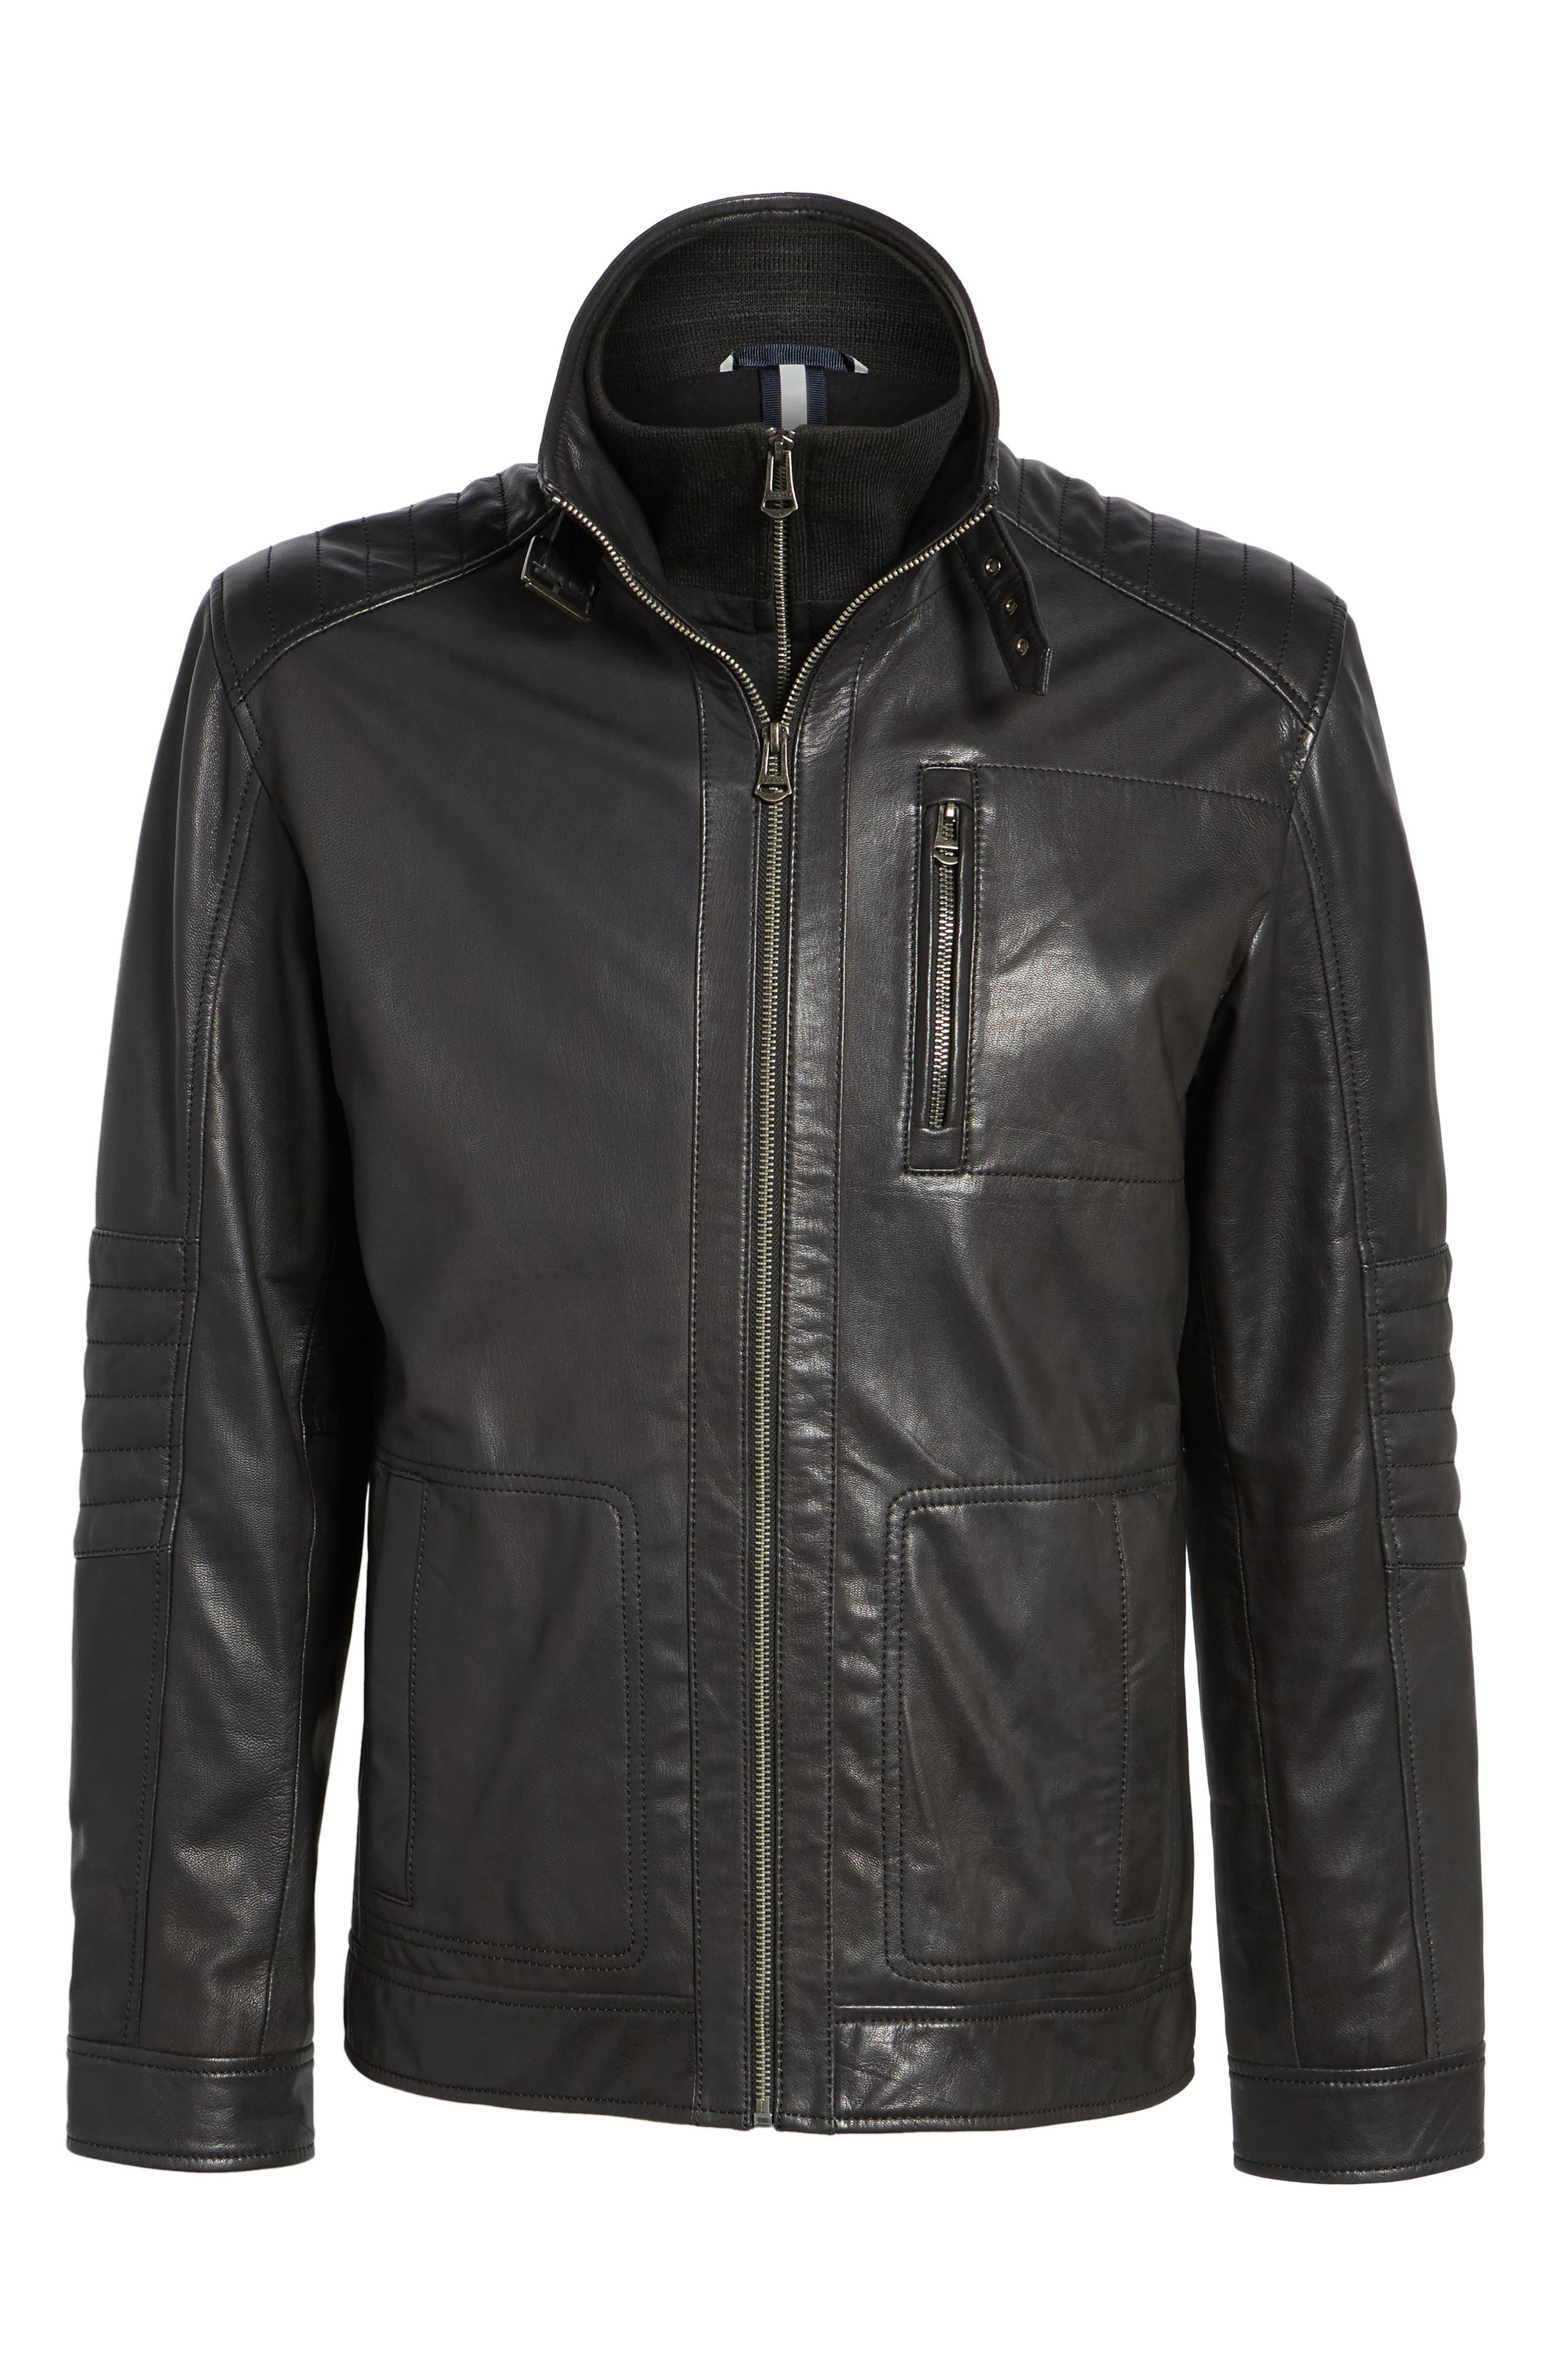 COLE HAAN,                             Washed Leather Moto Jacket with Knit Bib,                             Alternate thumbnail 5, color,                             001